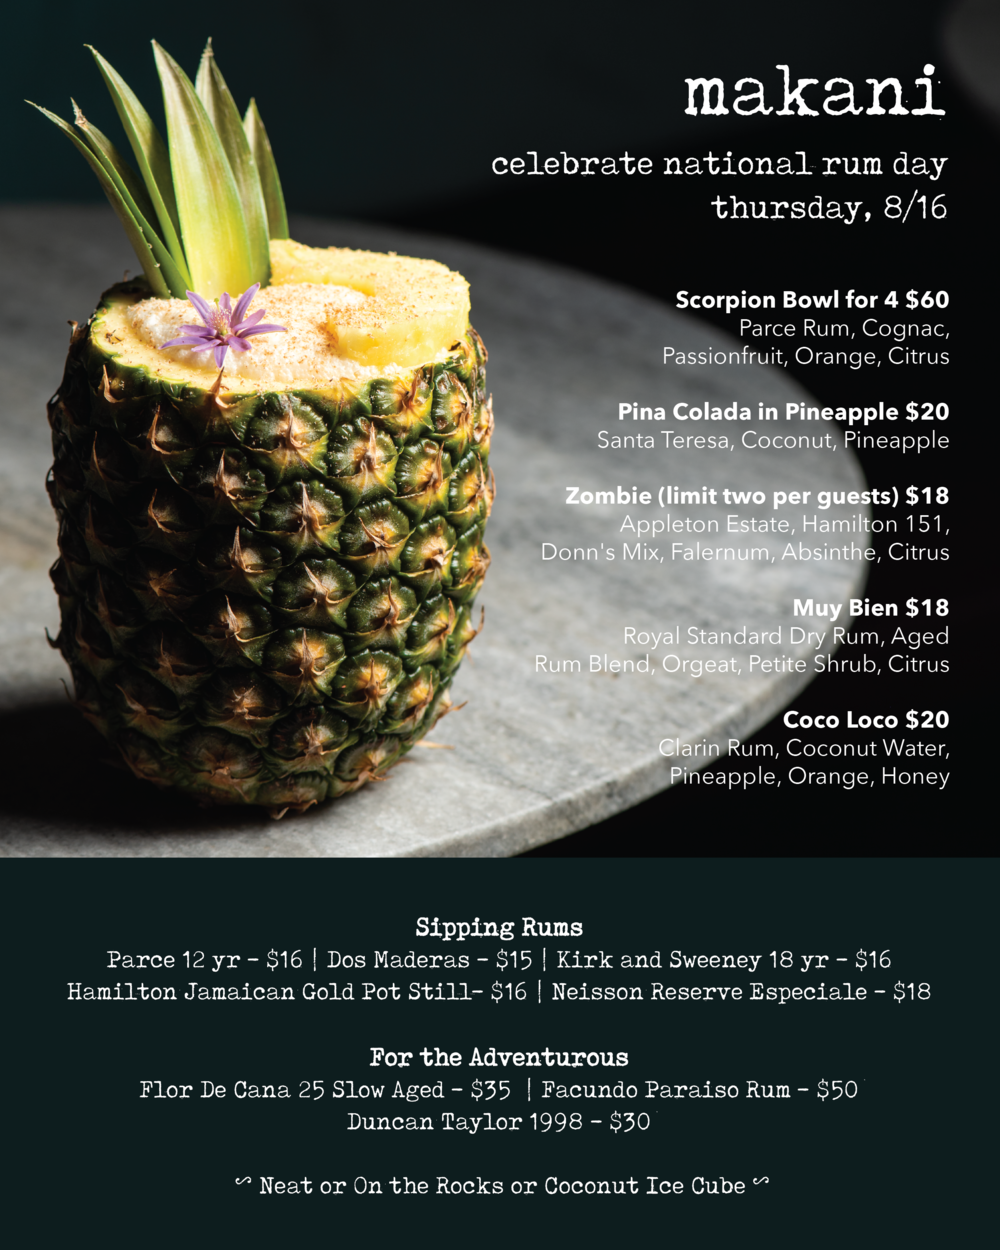 National Rum Day! Thursday, August 16th - In addition to our current rum-centric cocktail offering, for National Rum Day we will have a few extra specials:Scorpion Bowl for 4 $60  |  Parce Rum, Cognac, Passionfruit, Orange, CitrusPina Colada in Pineapple $20  |  Santa Teresa, Coconut,Pineapple Zombie (limit two per guests) $18  |  Appleton Estate, Hamilton 151, Donn's Mix, Falernum, Absinthe, CitrusMuy Bien $18  |  Royal Standard Dry Rum, Aged Rum Blend, Orgeat, Petite Shrub, CitrusCoco Loco $20  |  Clarin Rum, Coconut Water, Pineapple, Orange, Honey As always, we will have a fine selection of rums for sipping!